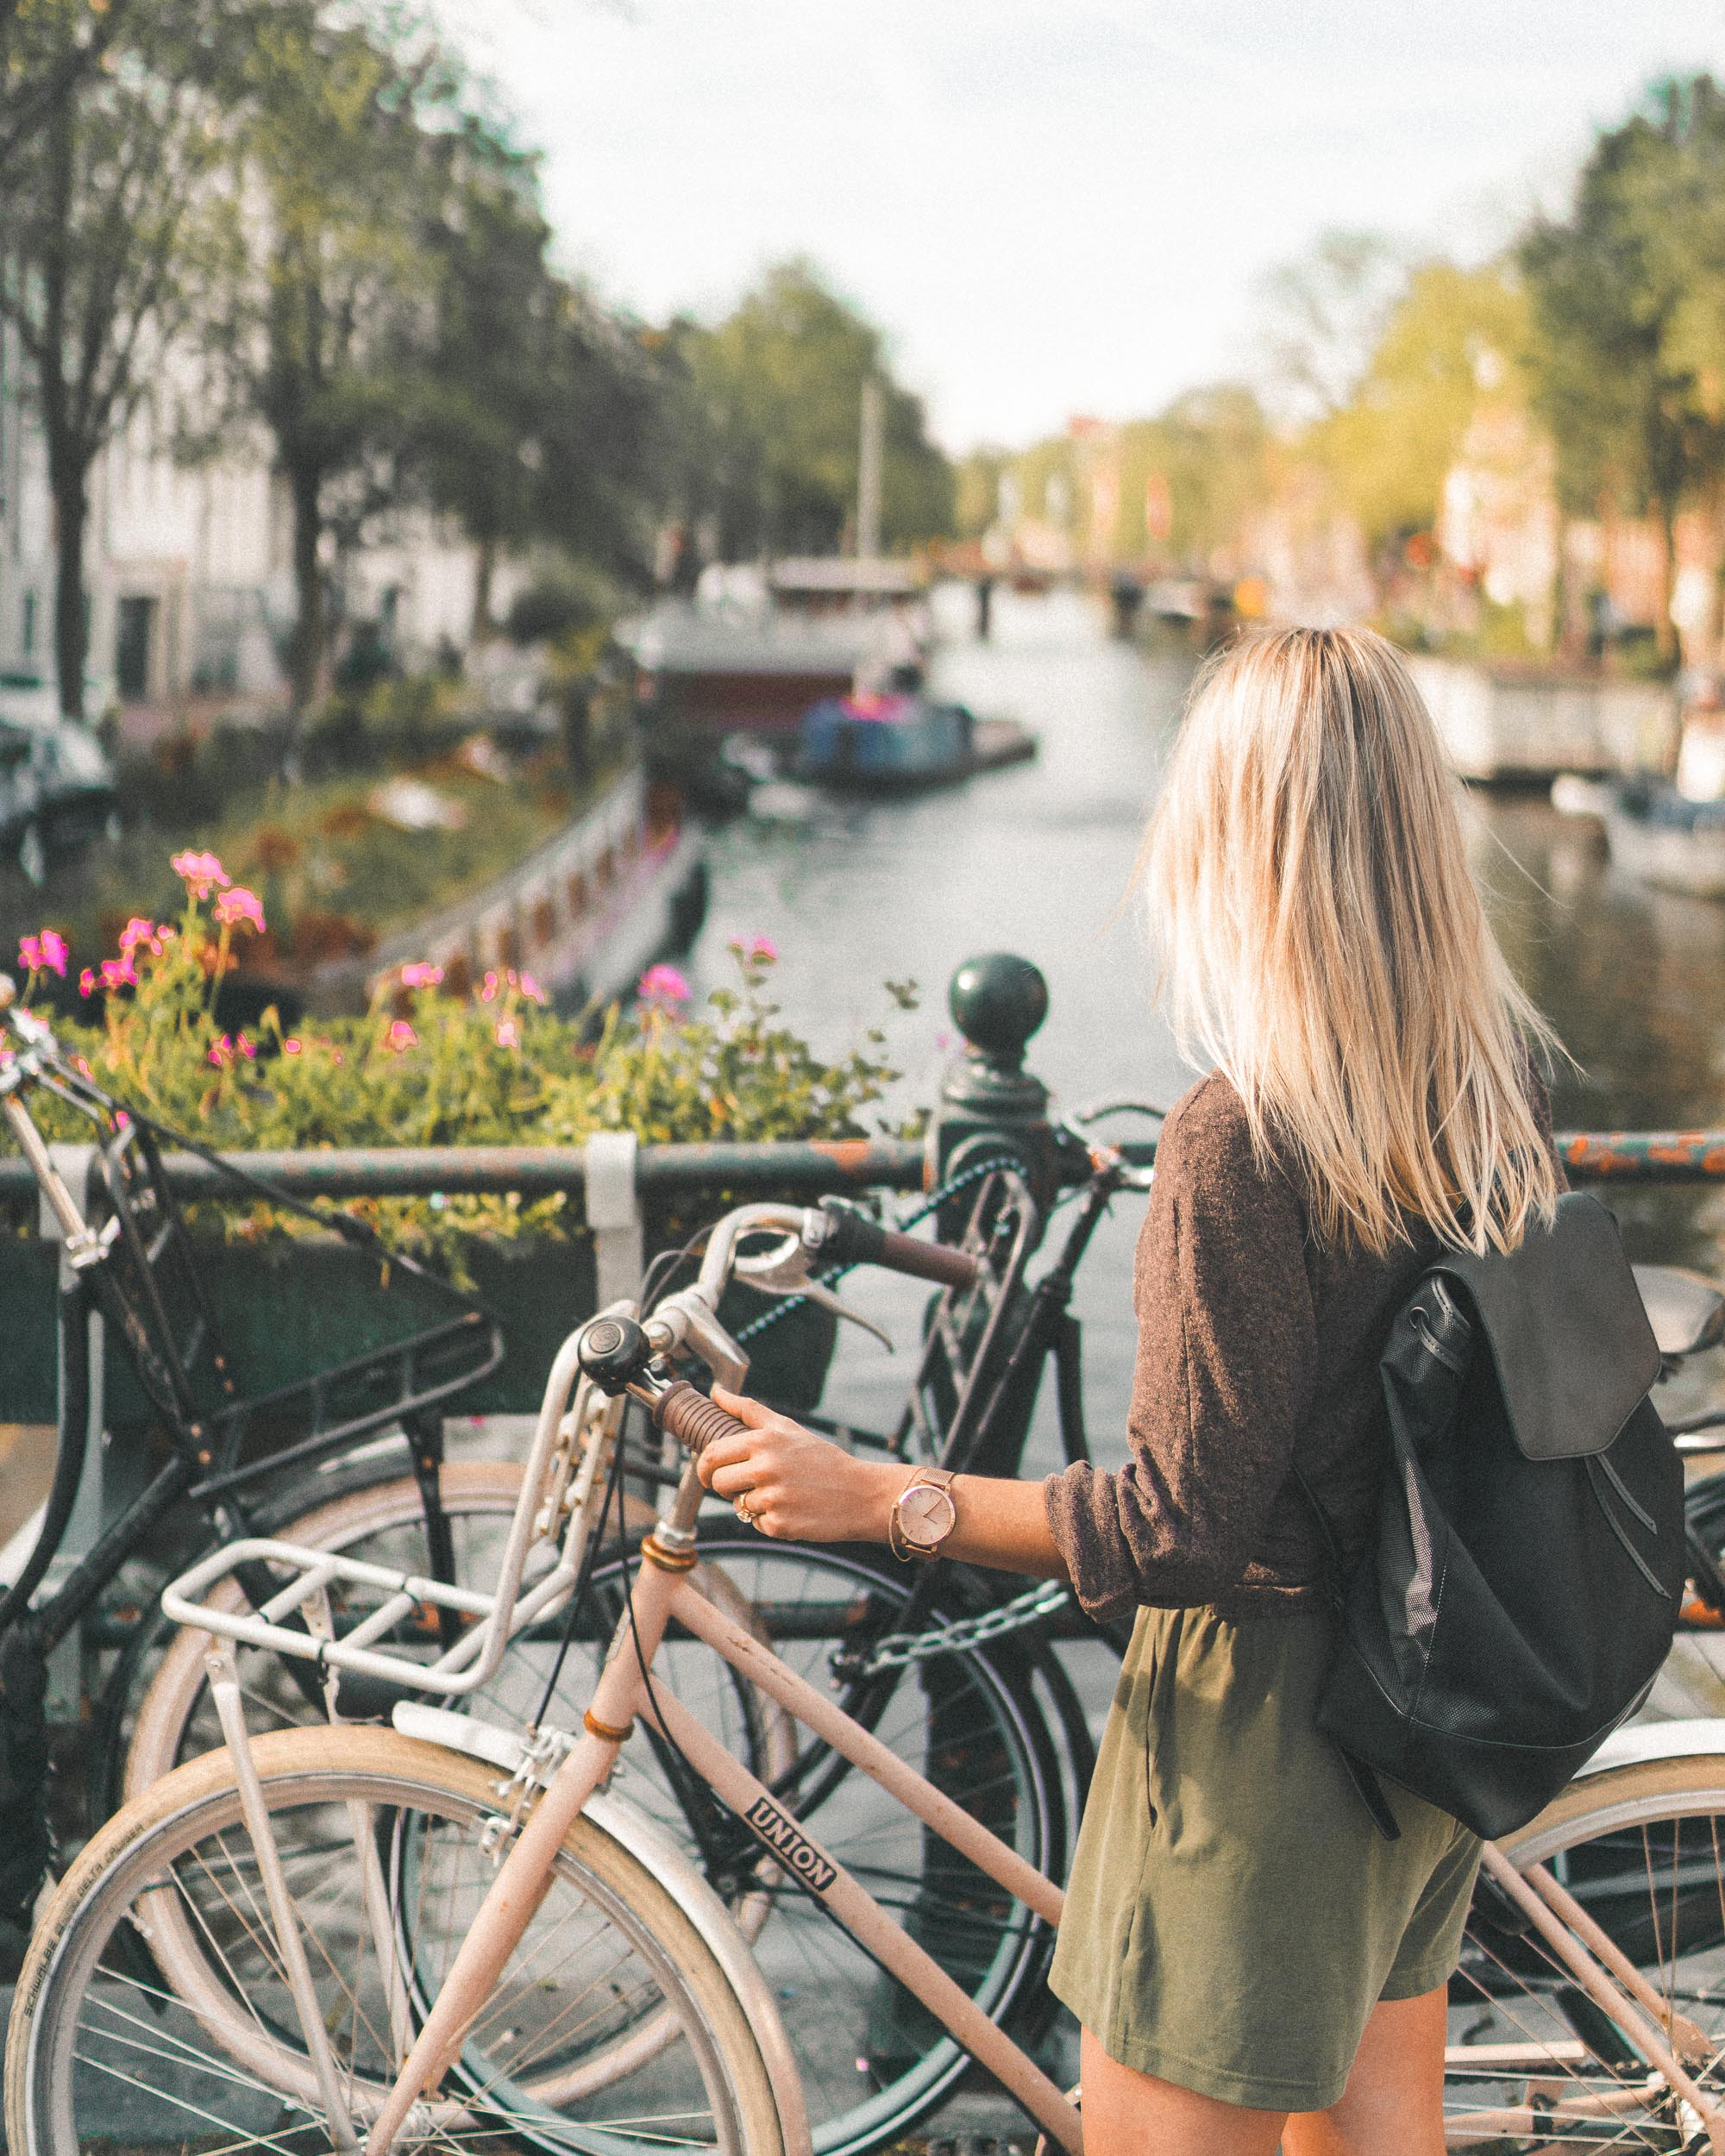 Overlooking canals in Amsterdam Netherlands Selena Taylor of Find Us Lost